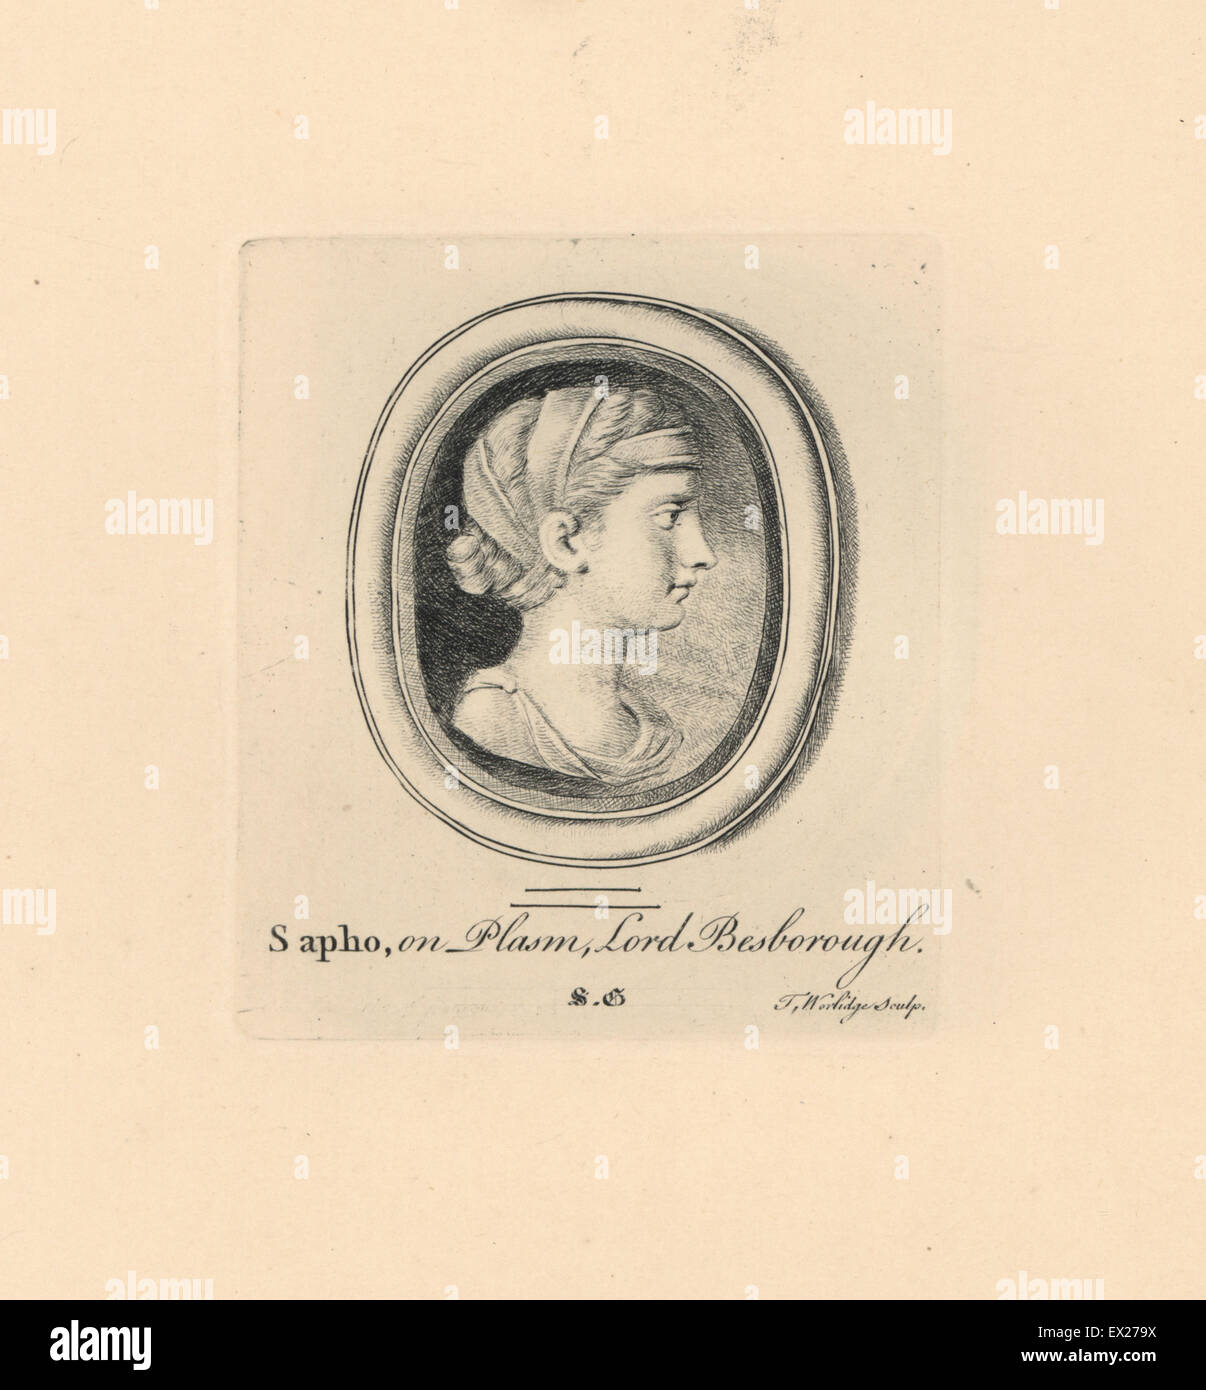 Portrait of Sapho or Sappho, Greek lyric poet from the island of Lesbos, with ribbons in hair, on plasma in Lord - Stock Image